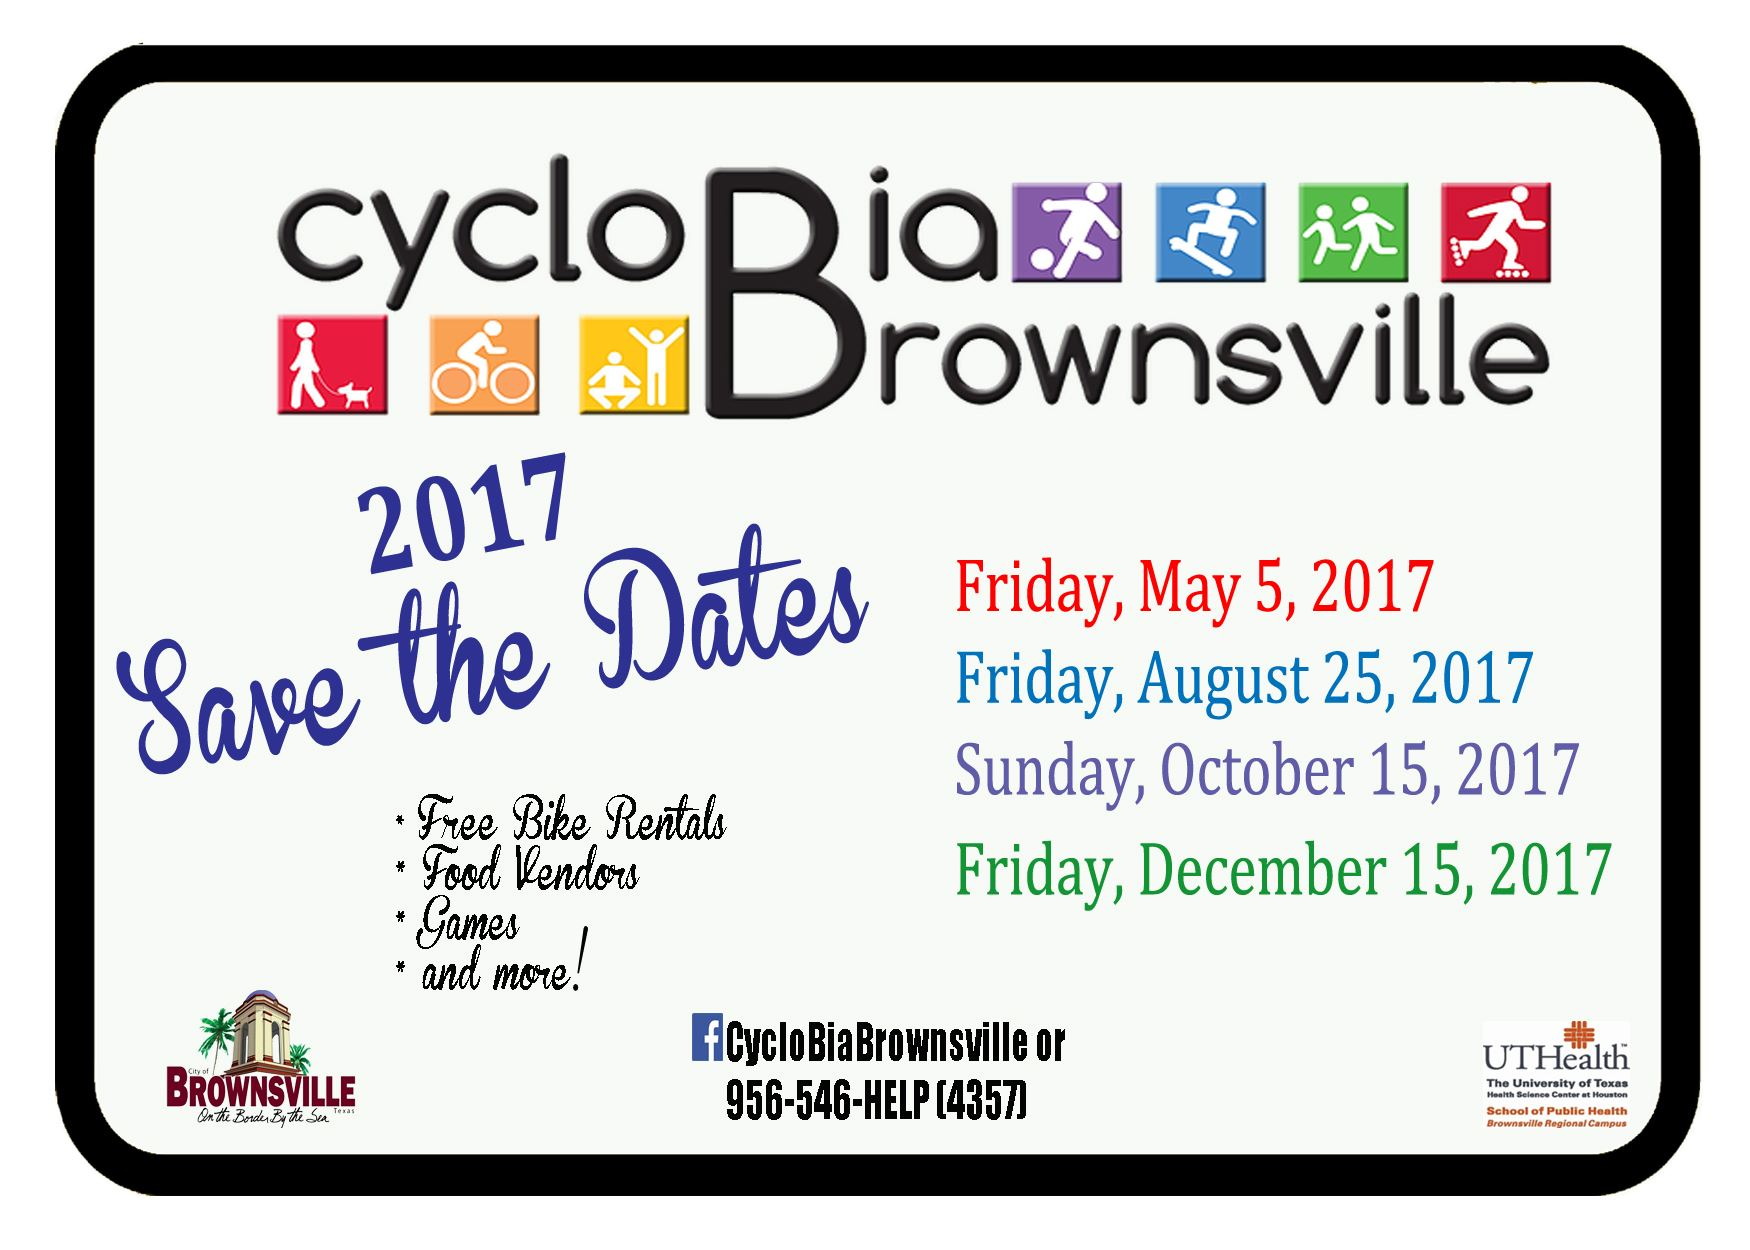 Save the Dates 2017